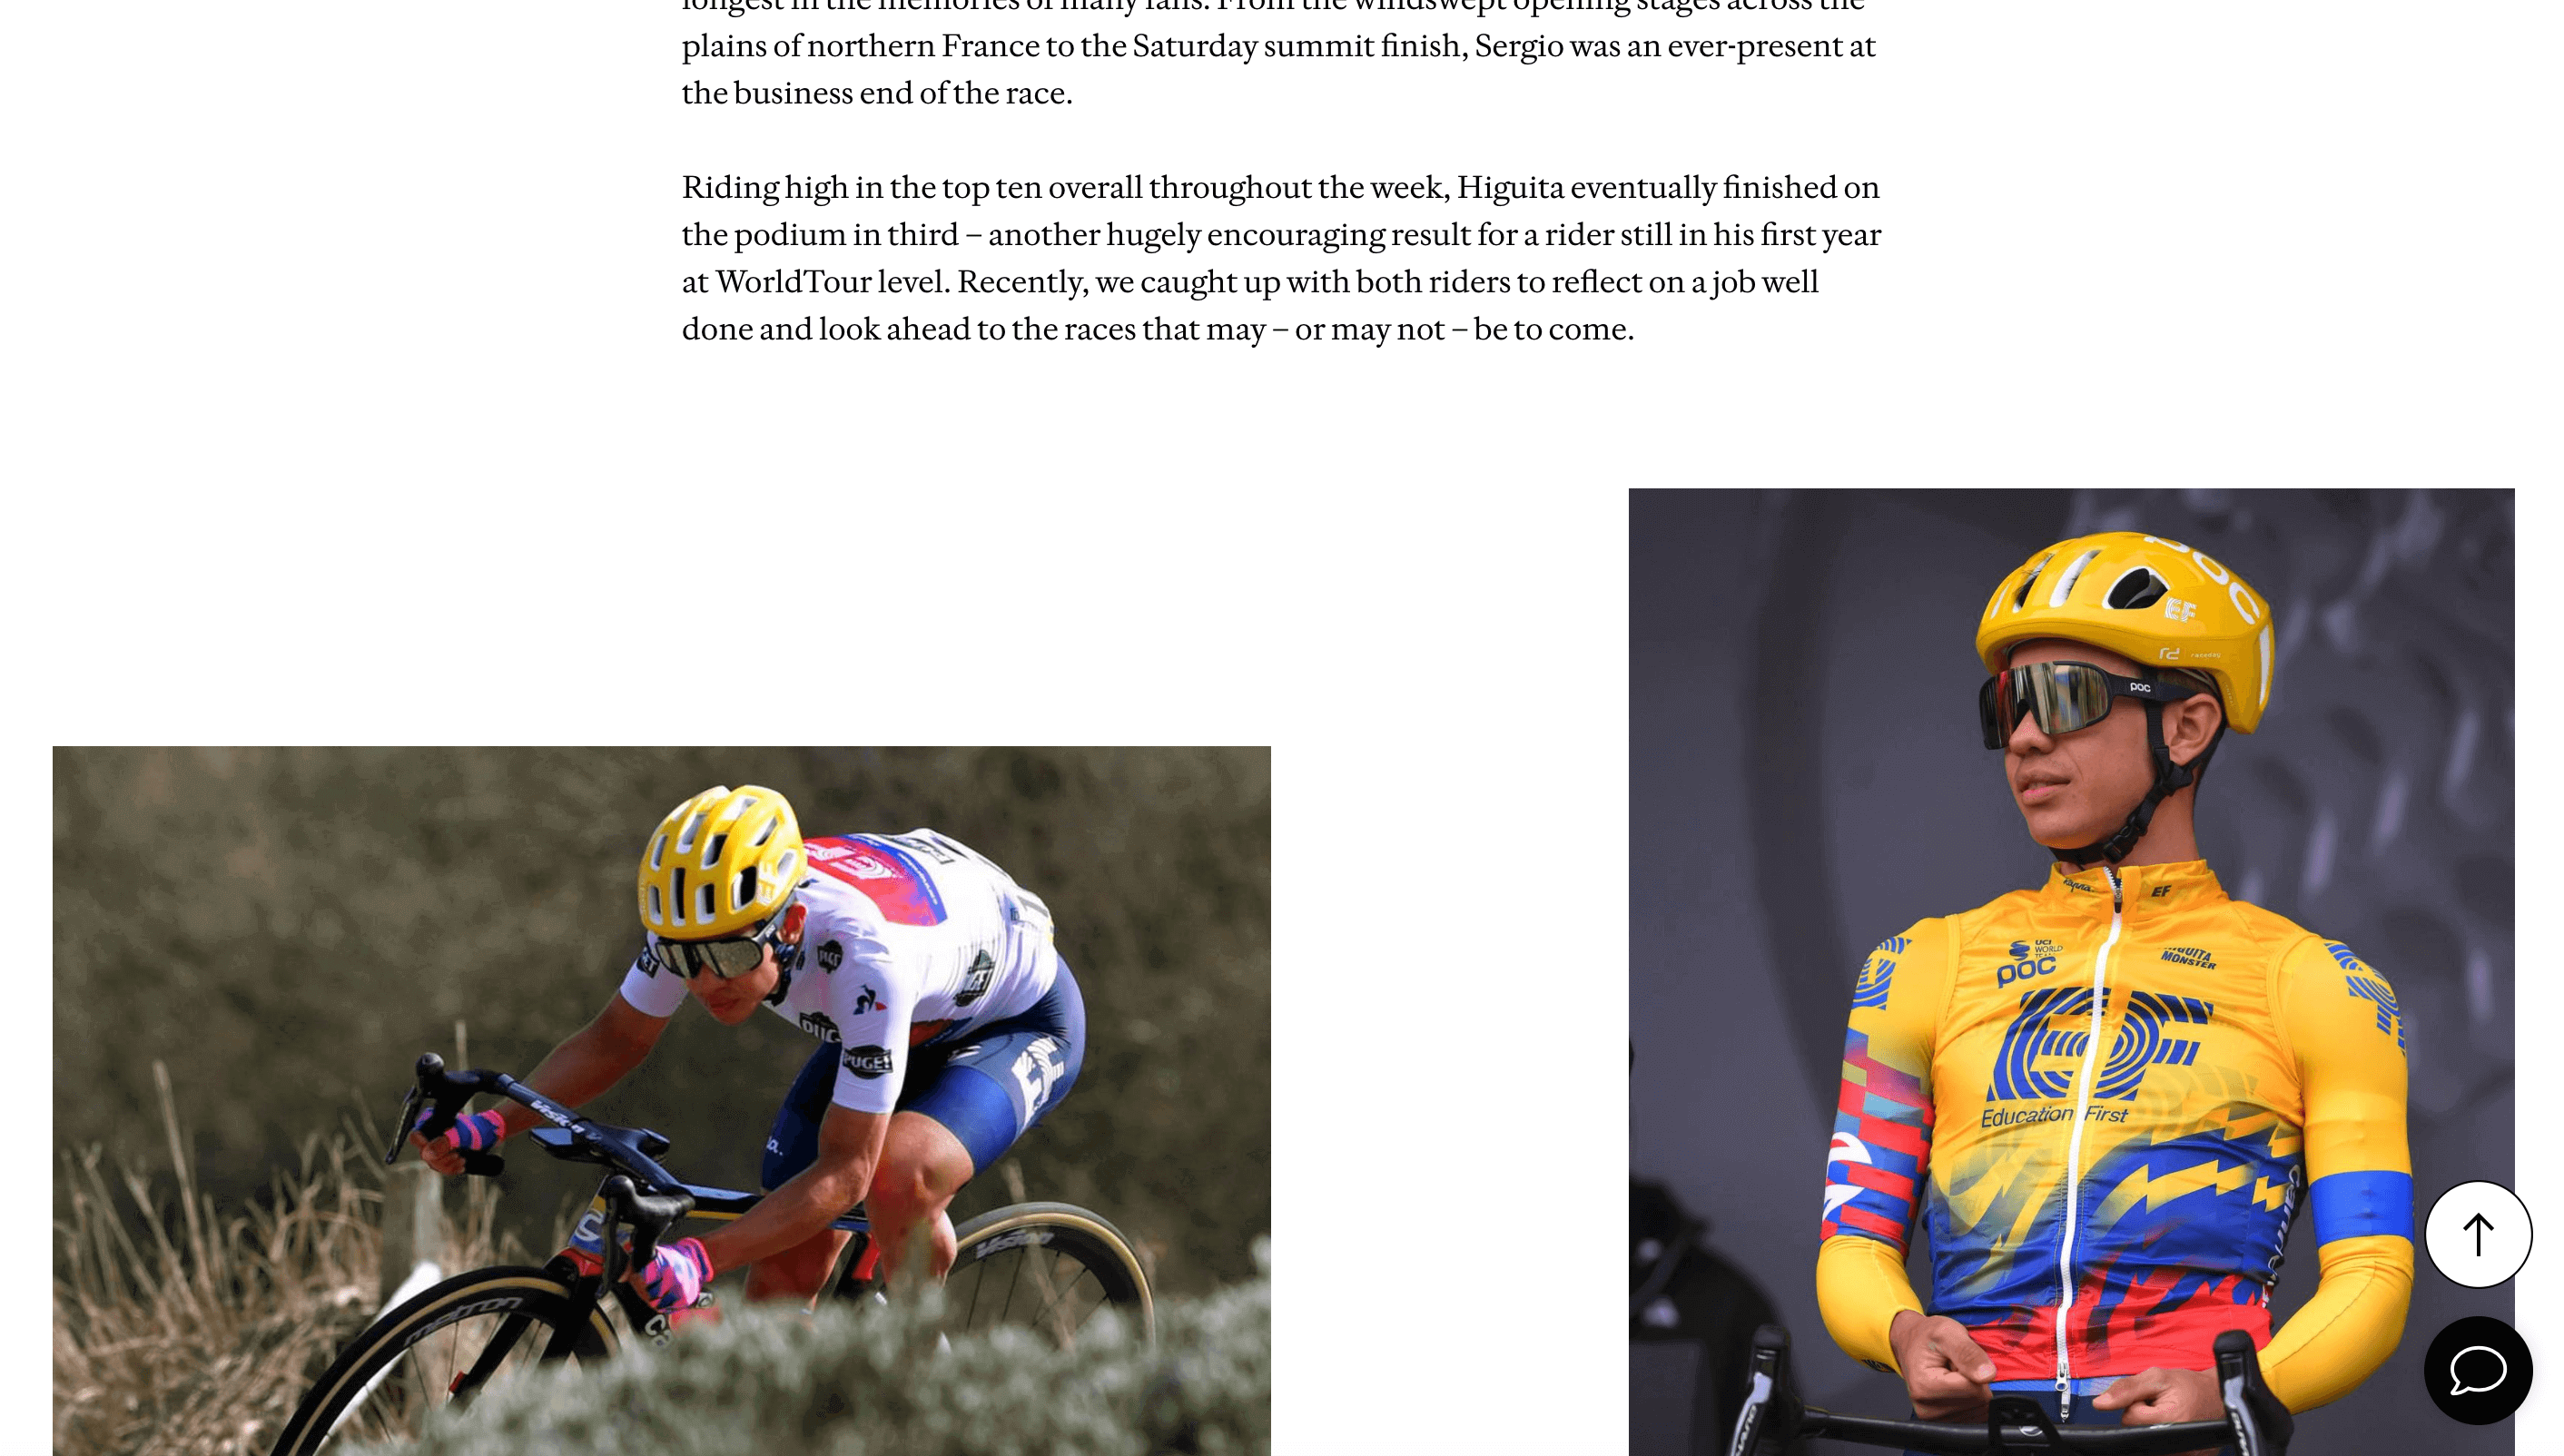 Photo collage of two cyclists, showing how excellent content design enhances the content experience.